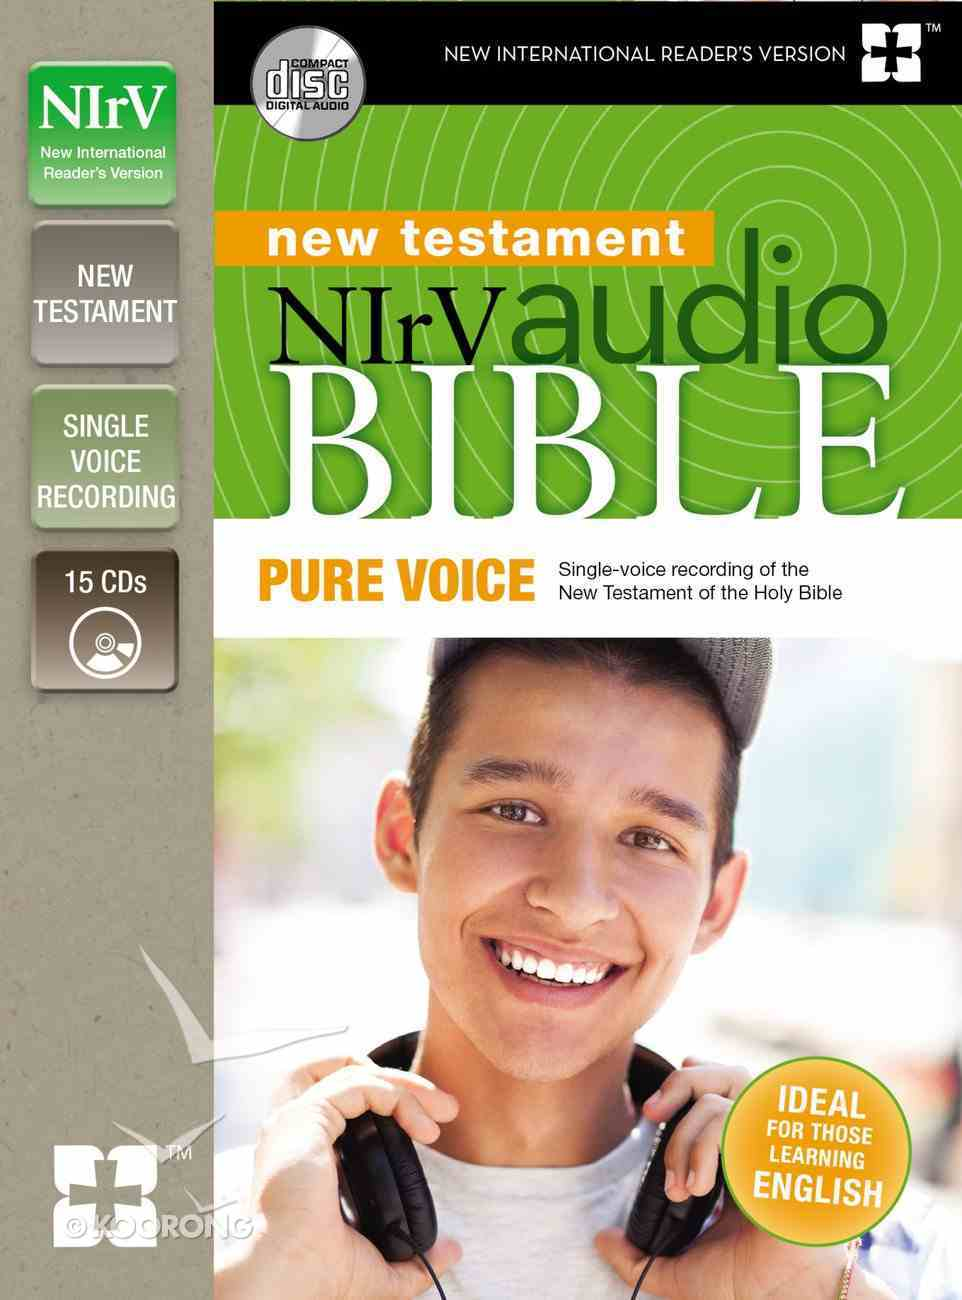 NIRV Audio Bible New Testament Pure Voice (Unabridged 18.55 Hrs) CD